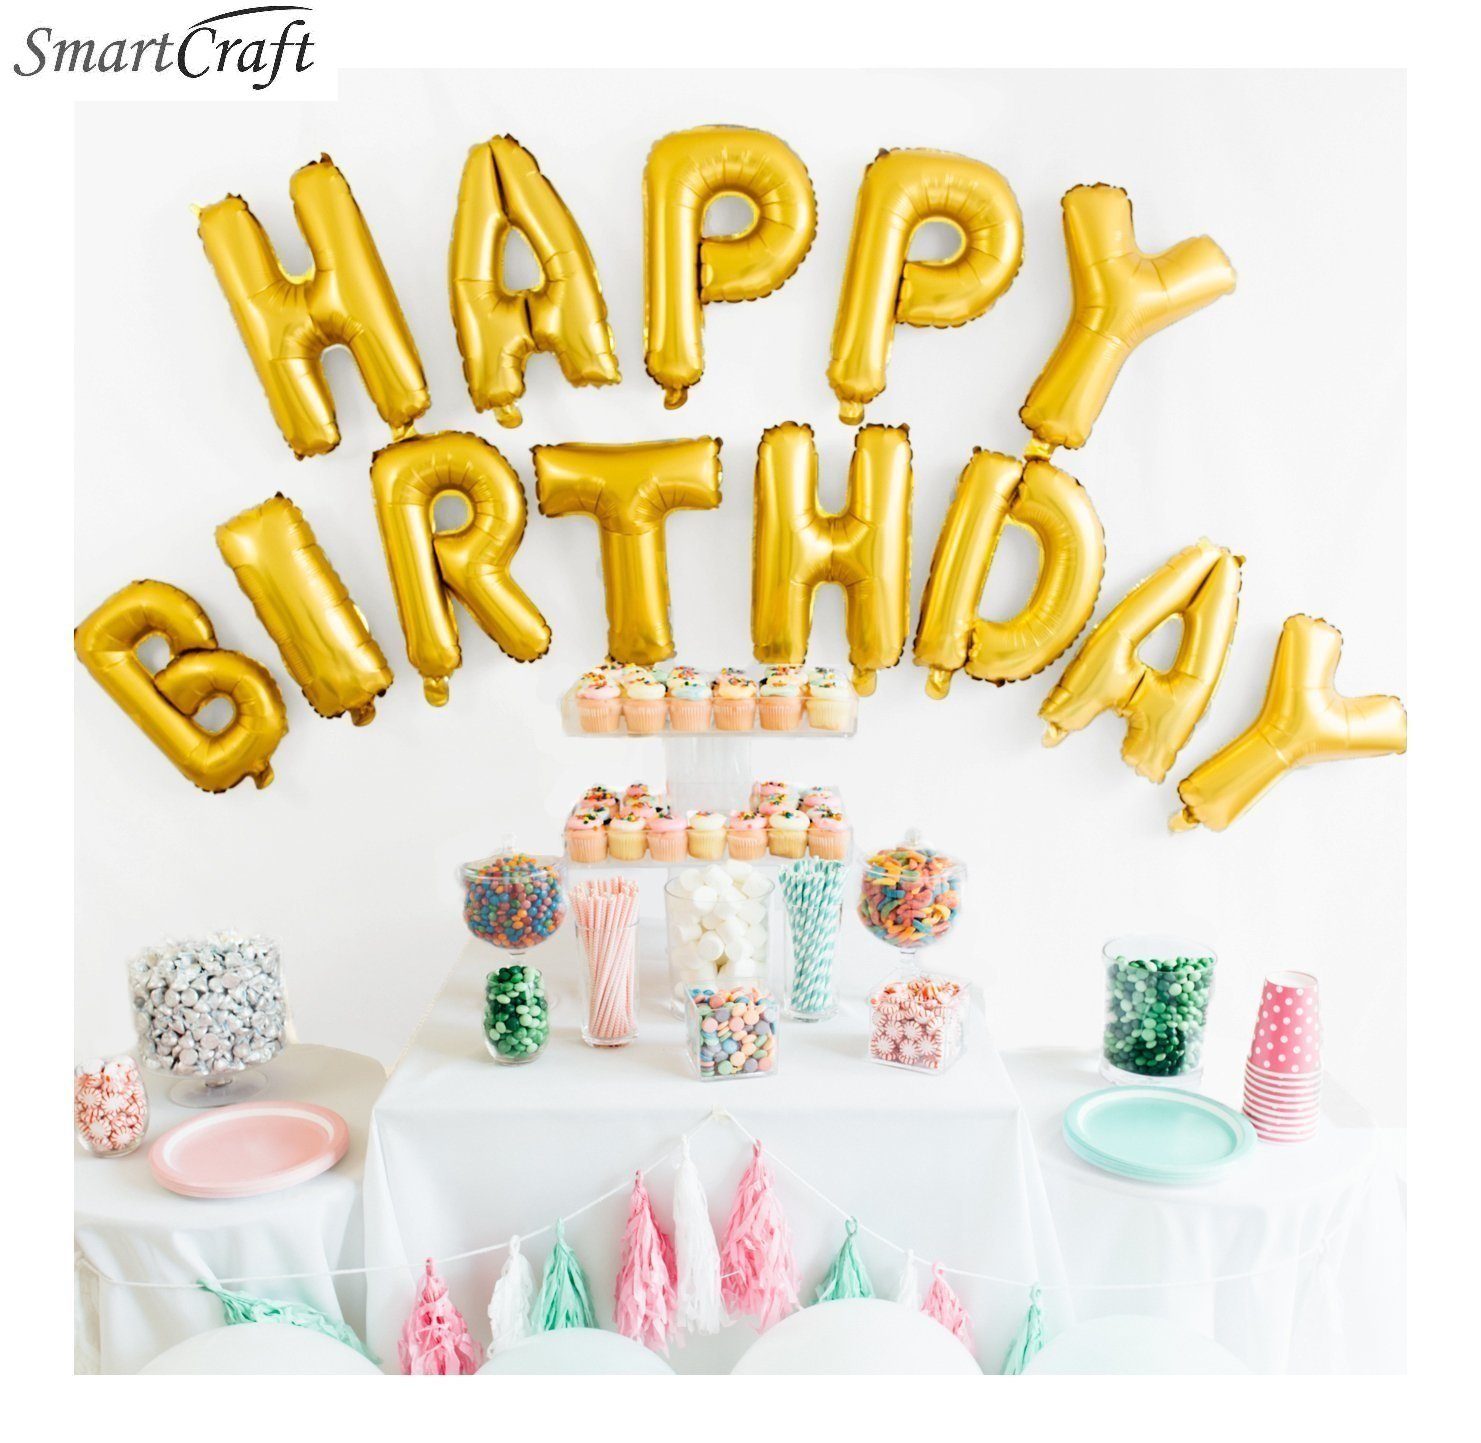 Birthday Party Decoration: Buy Birthday Party Decoration Online at ...